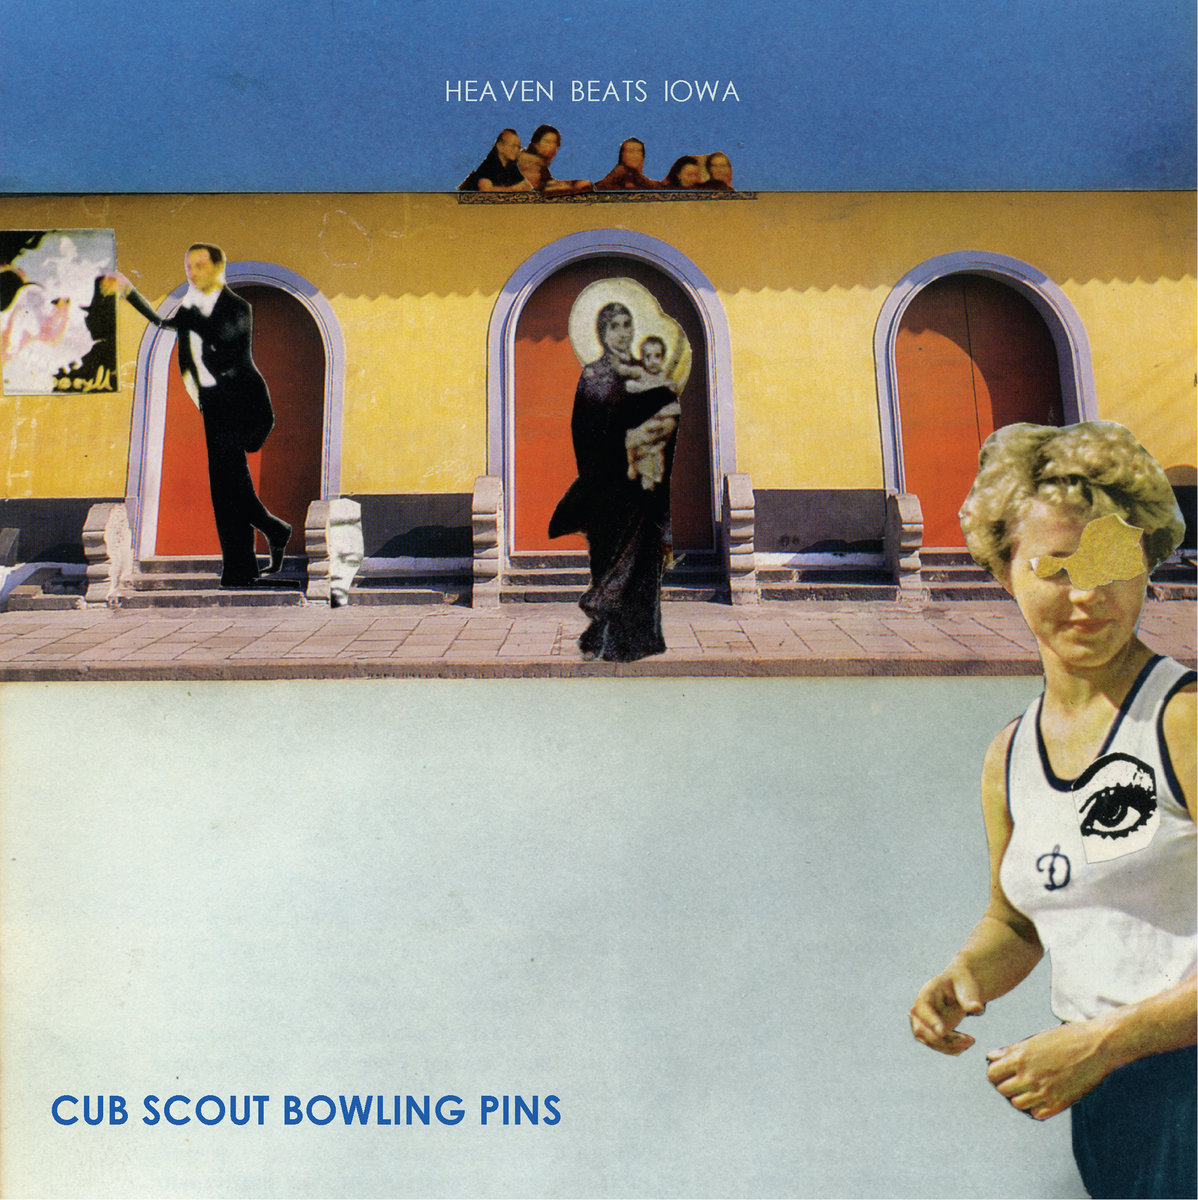 Cub Scout Bowling Pins: Heaven Beats Iowa [Album Review]